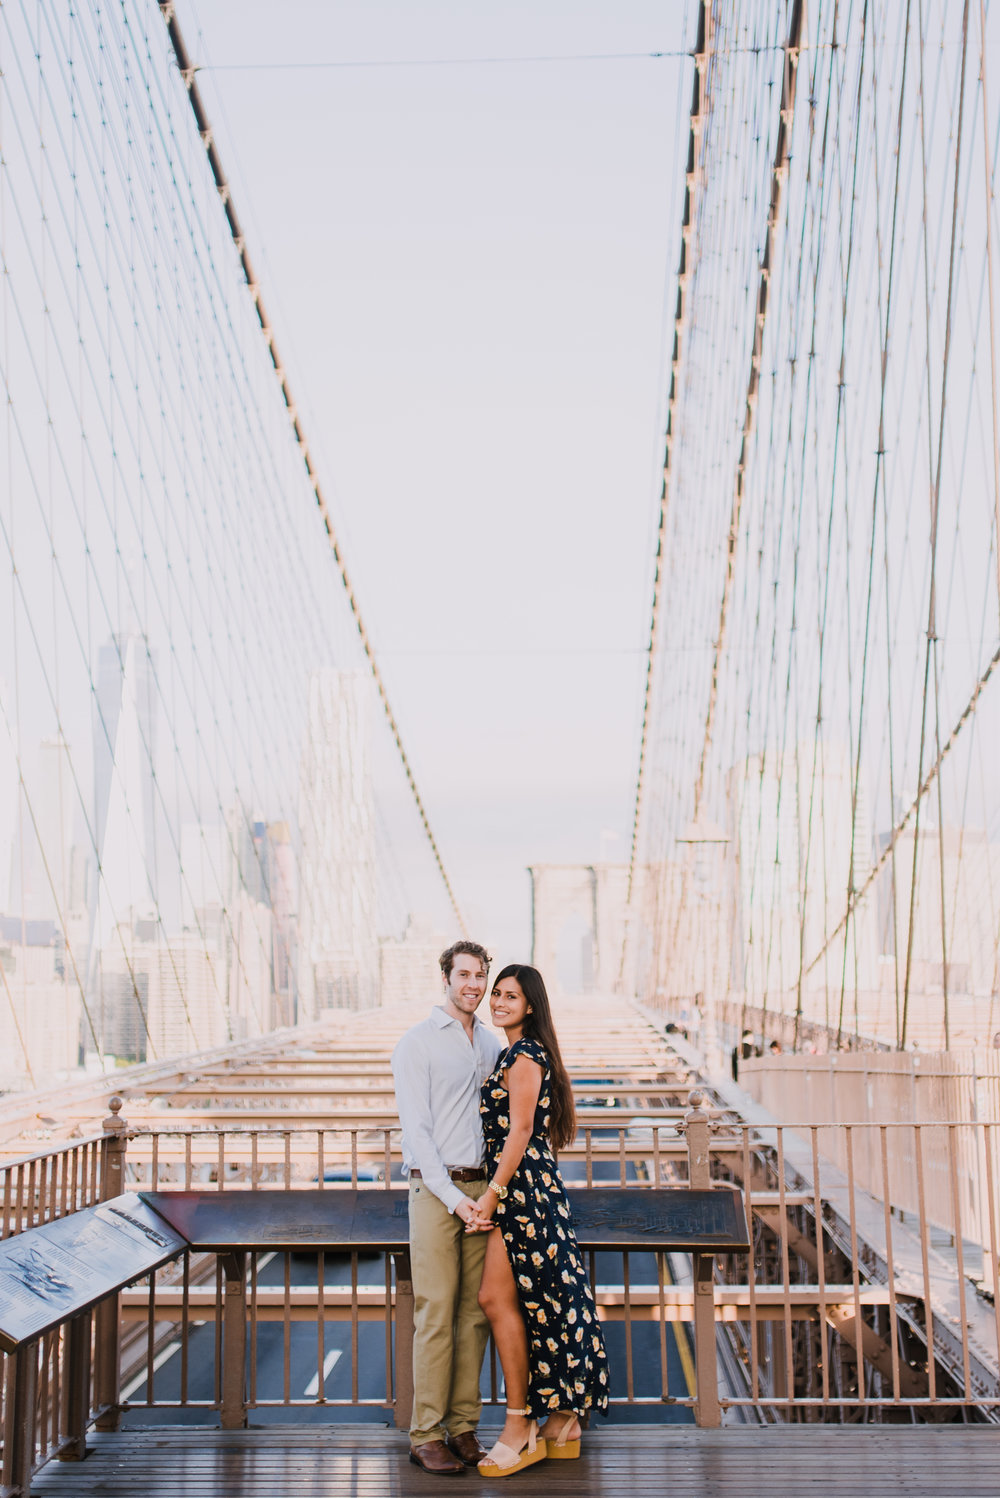 brooklyn bridge engagement shoot, couple shoot nyc, nyc wedding photographer, destination wedding photographer, documentary wedding photographer in nyc (21).jpg